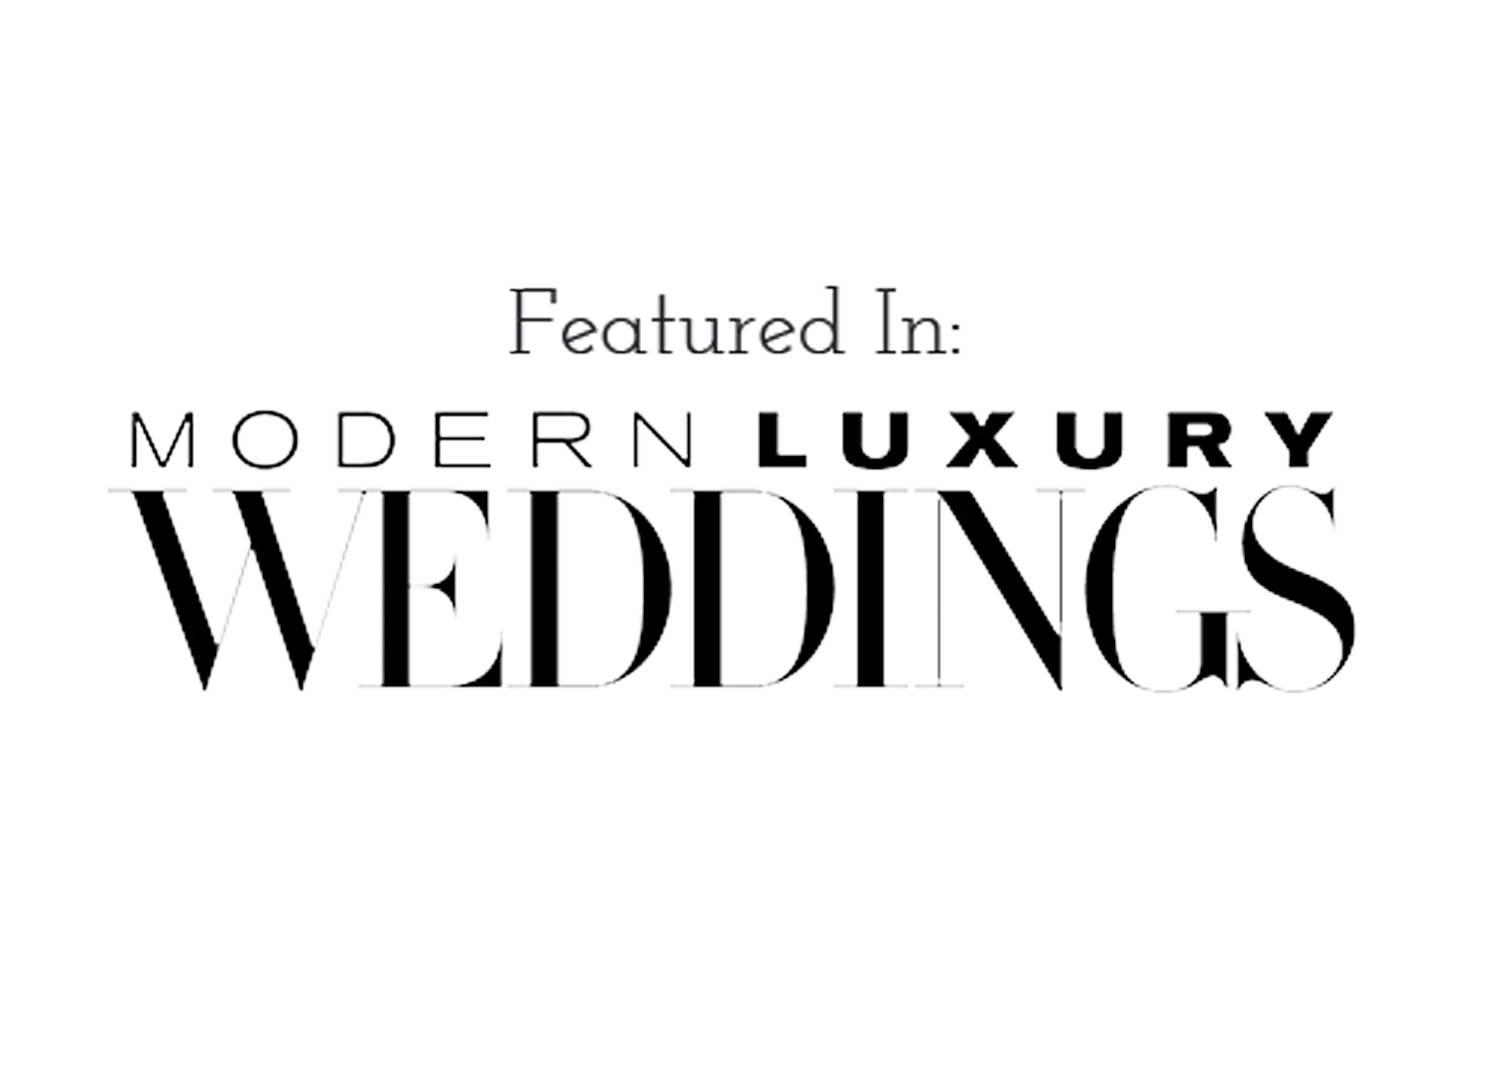 catherinewayman-luxuryflorist-southernflorist-atlanta-birmingham-savannah-charleston-montgomery-eventflorist-weddingflorist-modernluxury-wedding.png